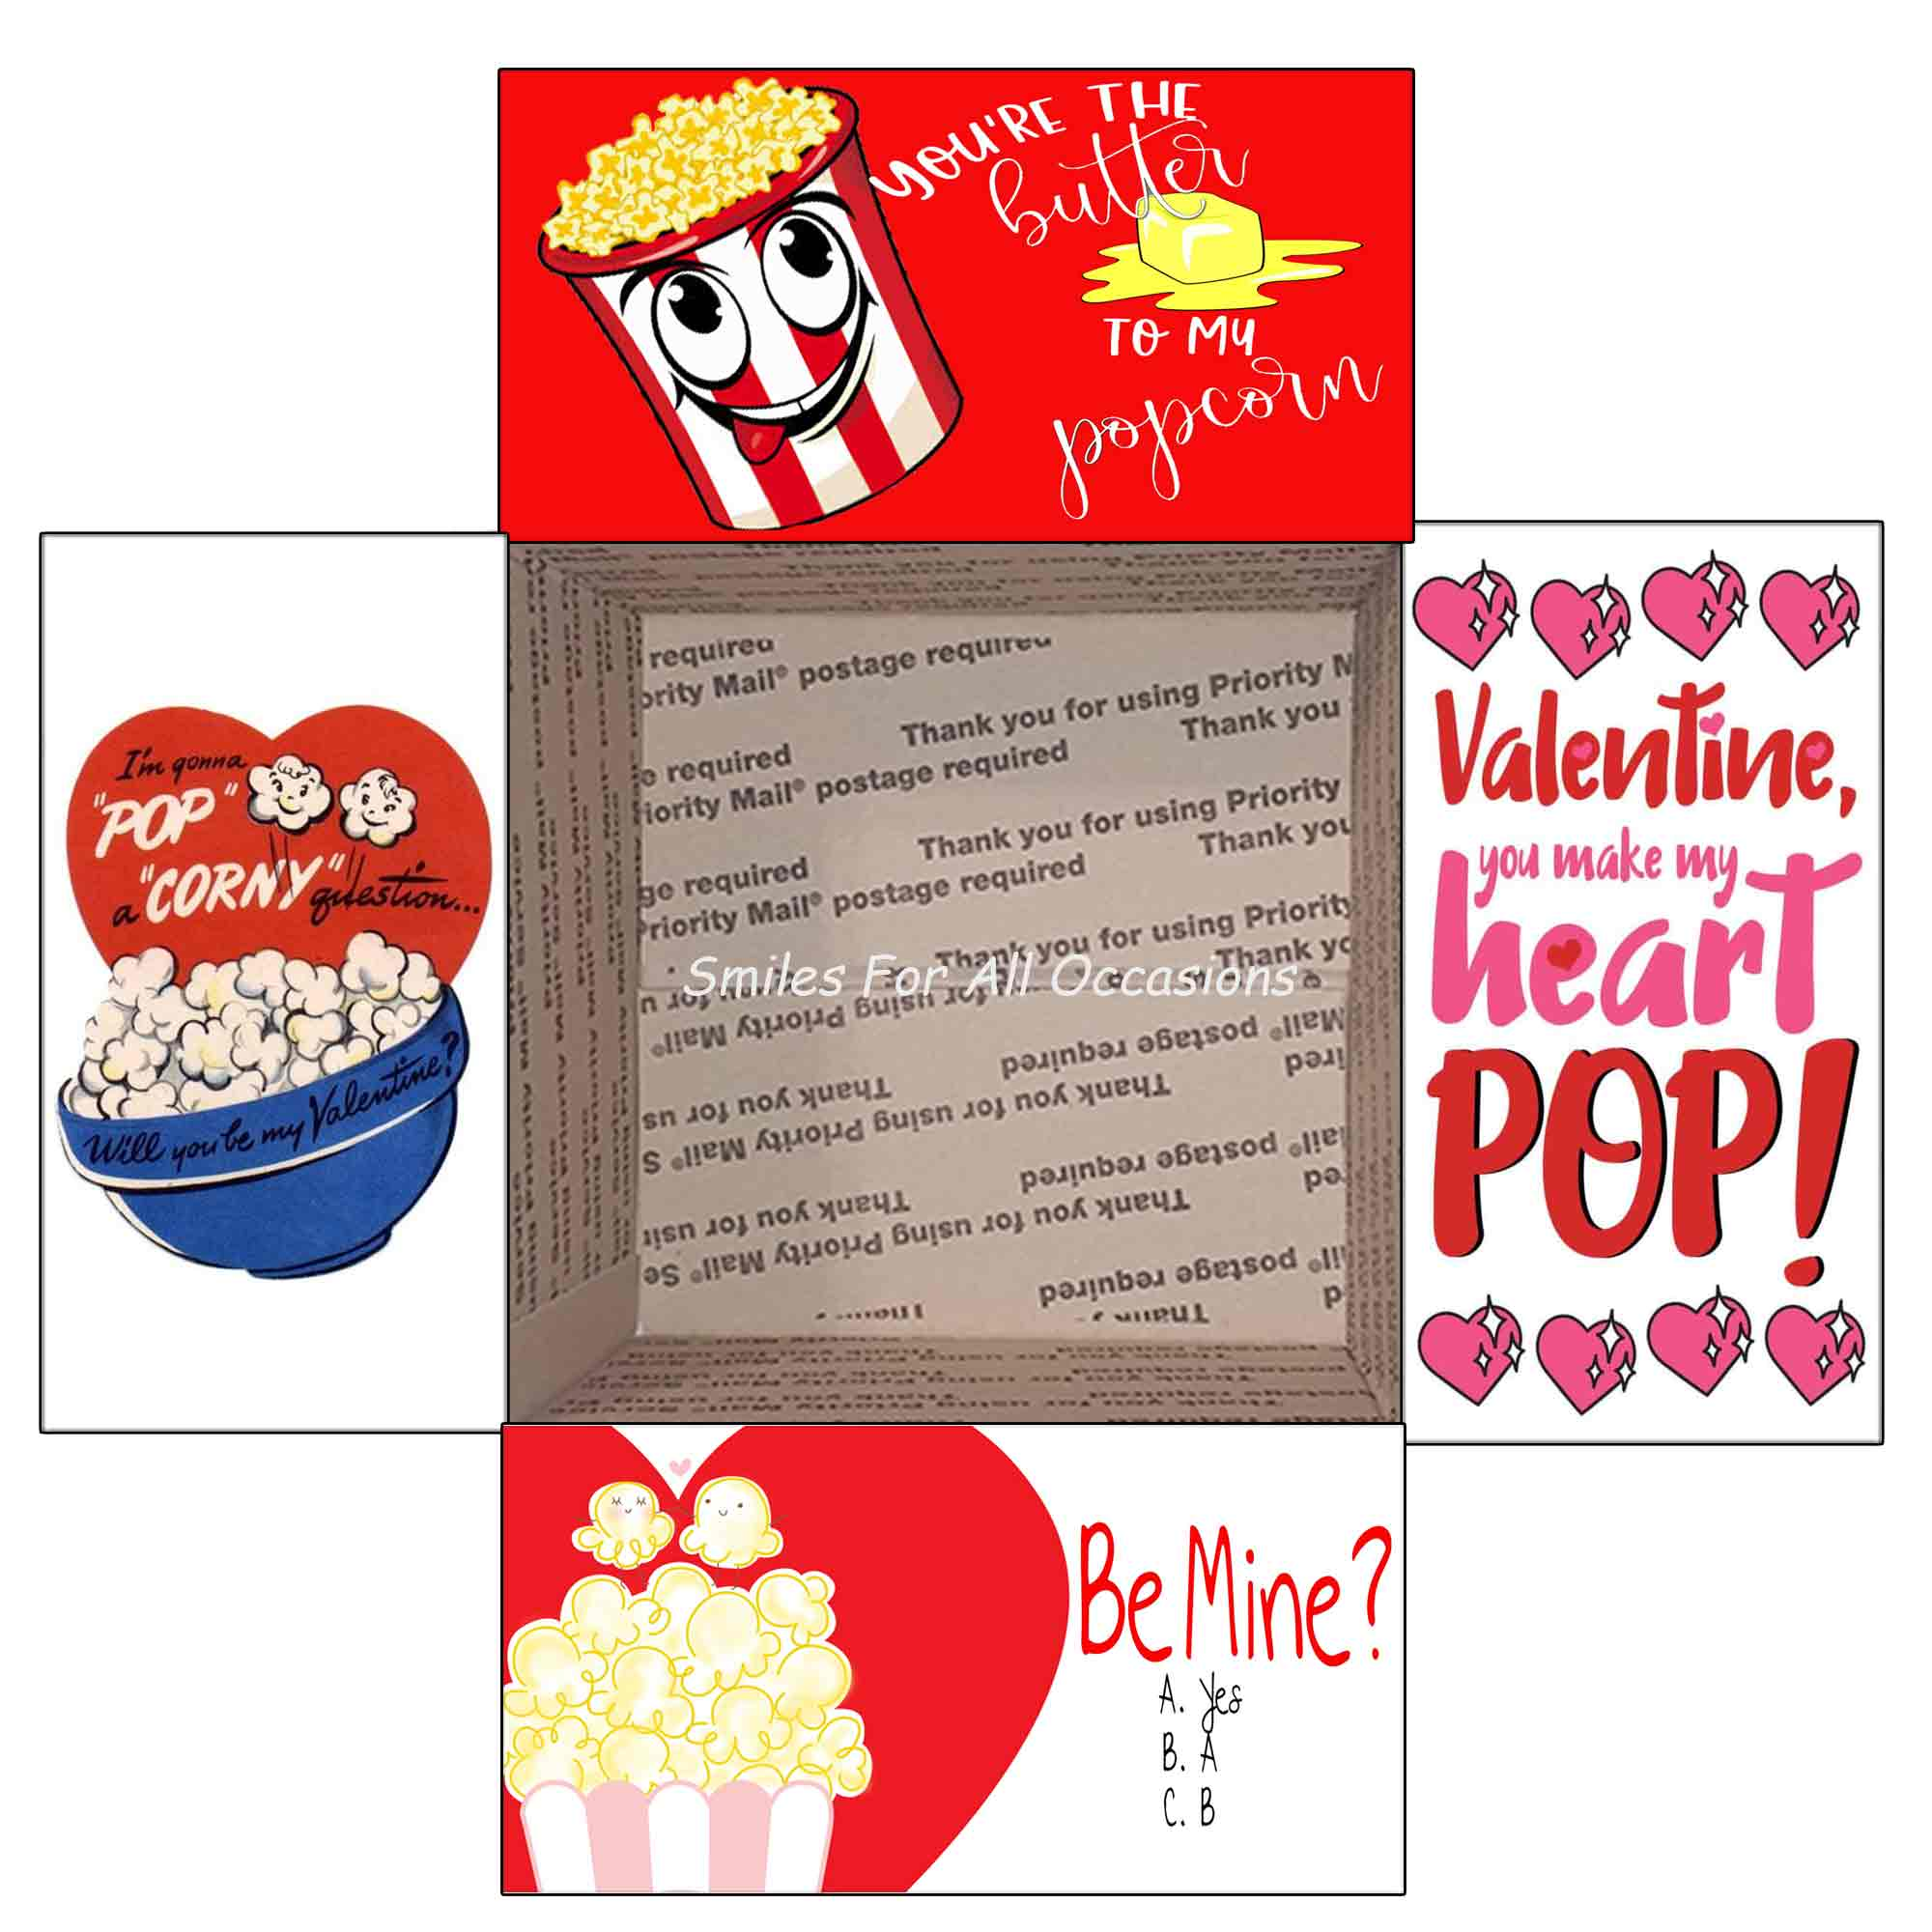 Valentine Popcorn Gift Box Care Package